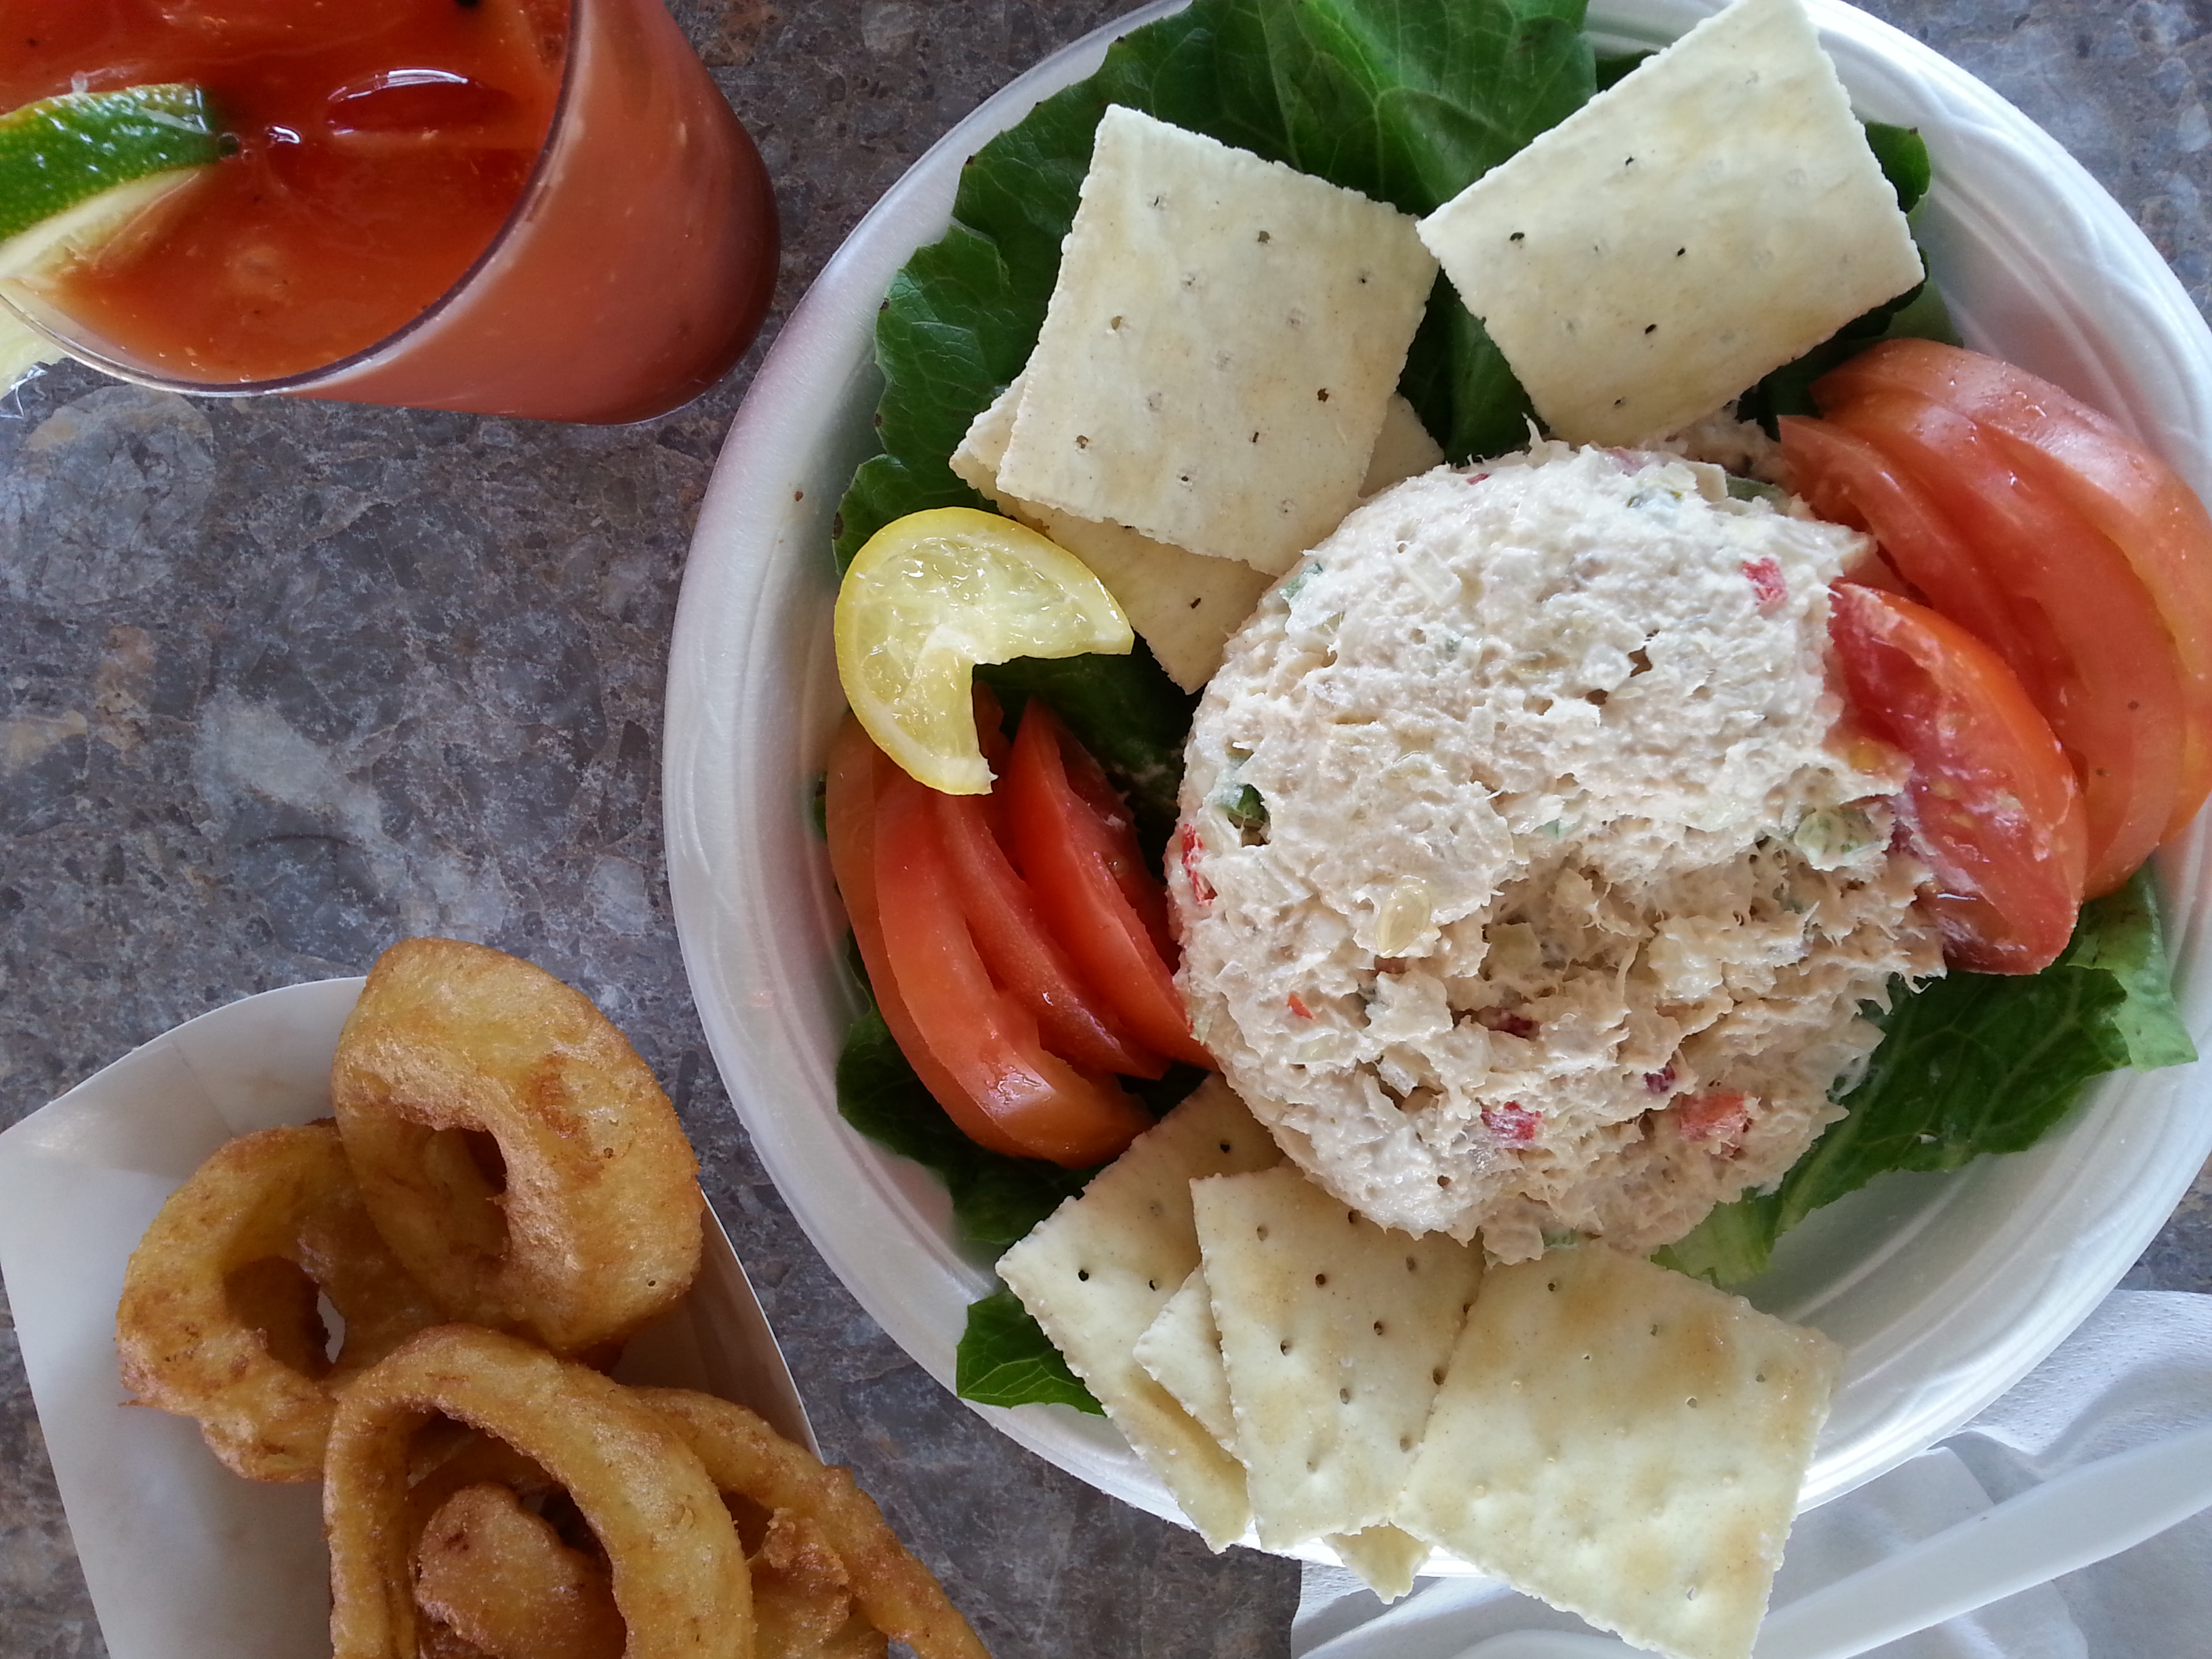 Grouper salad with onion rings and a Bloody Mary